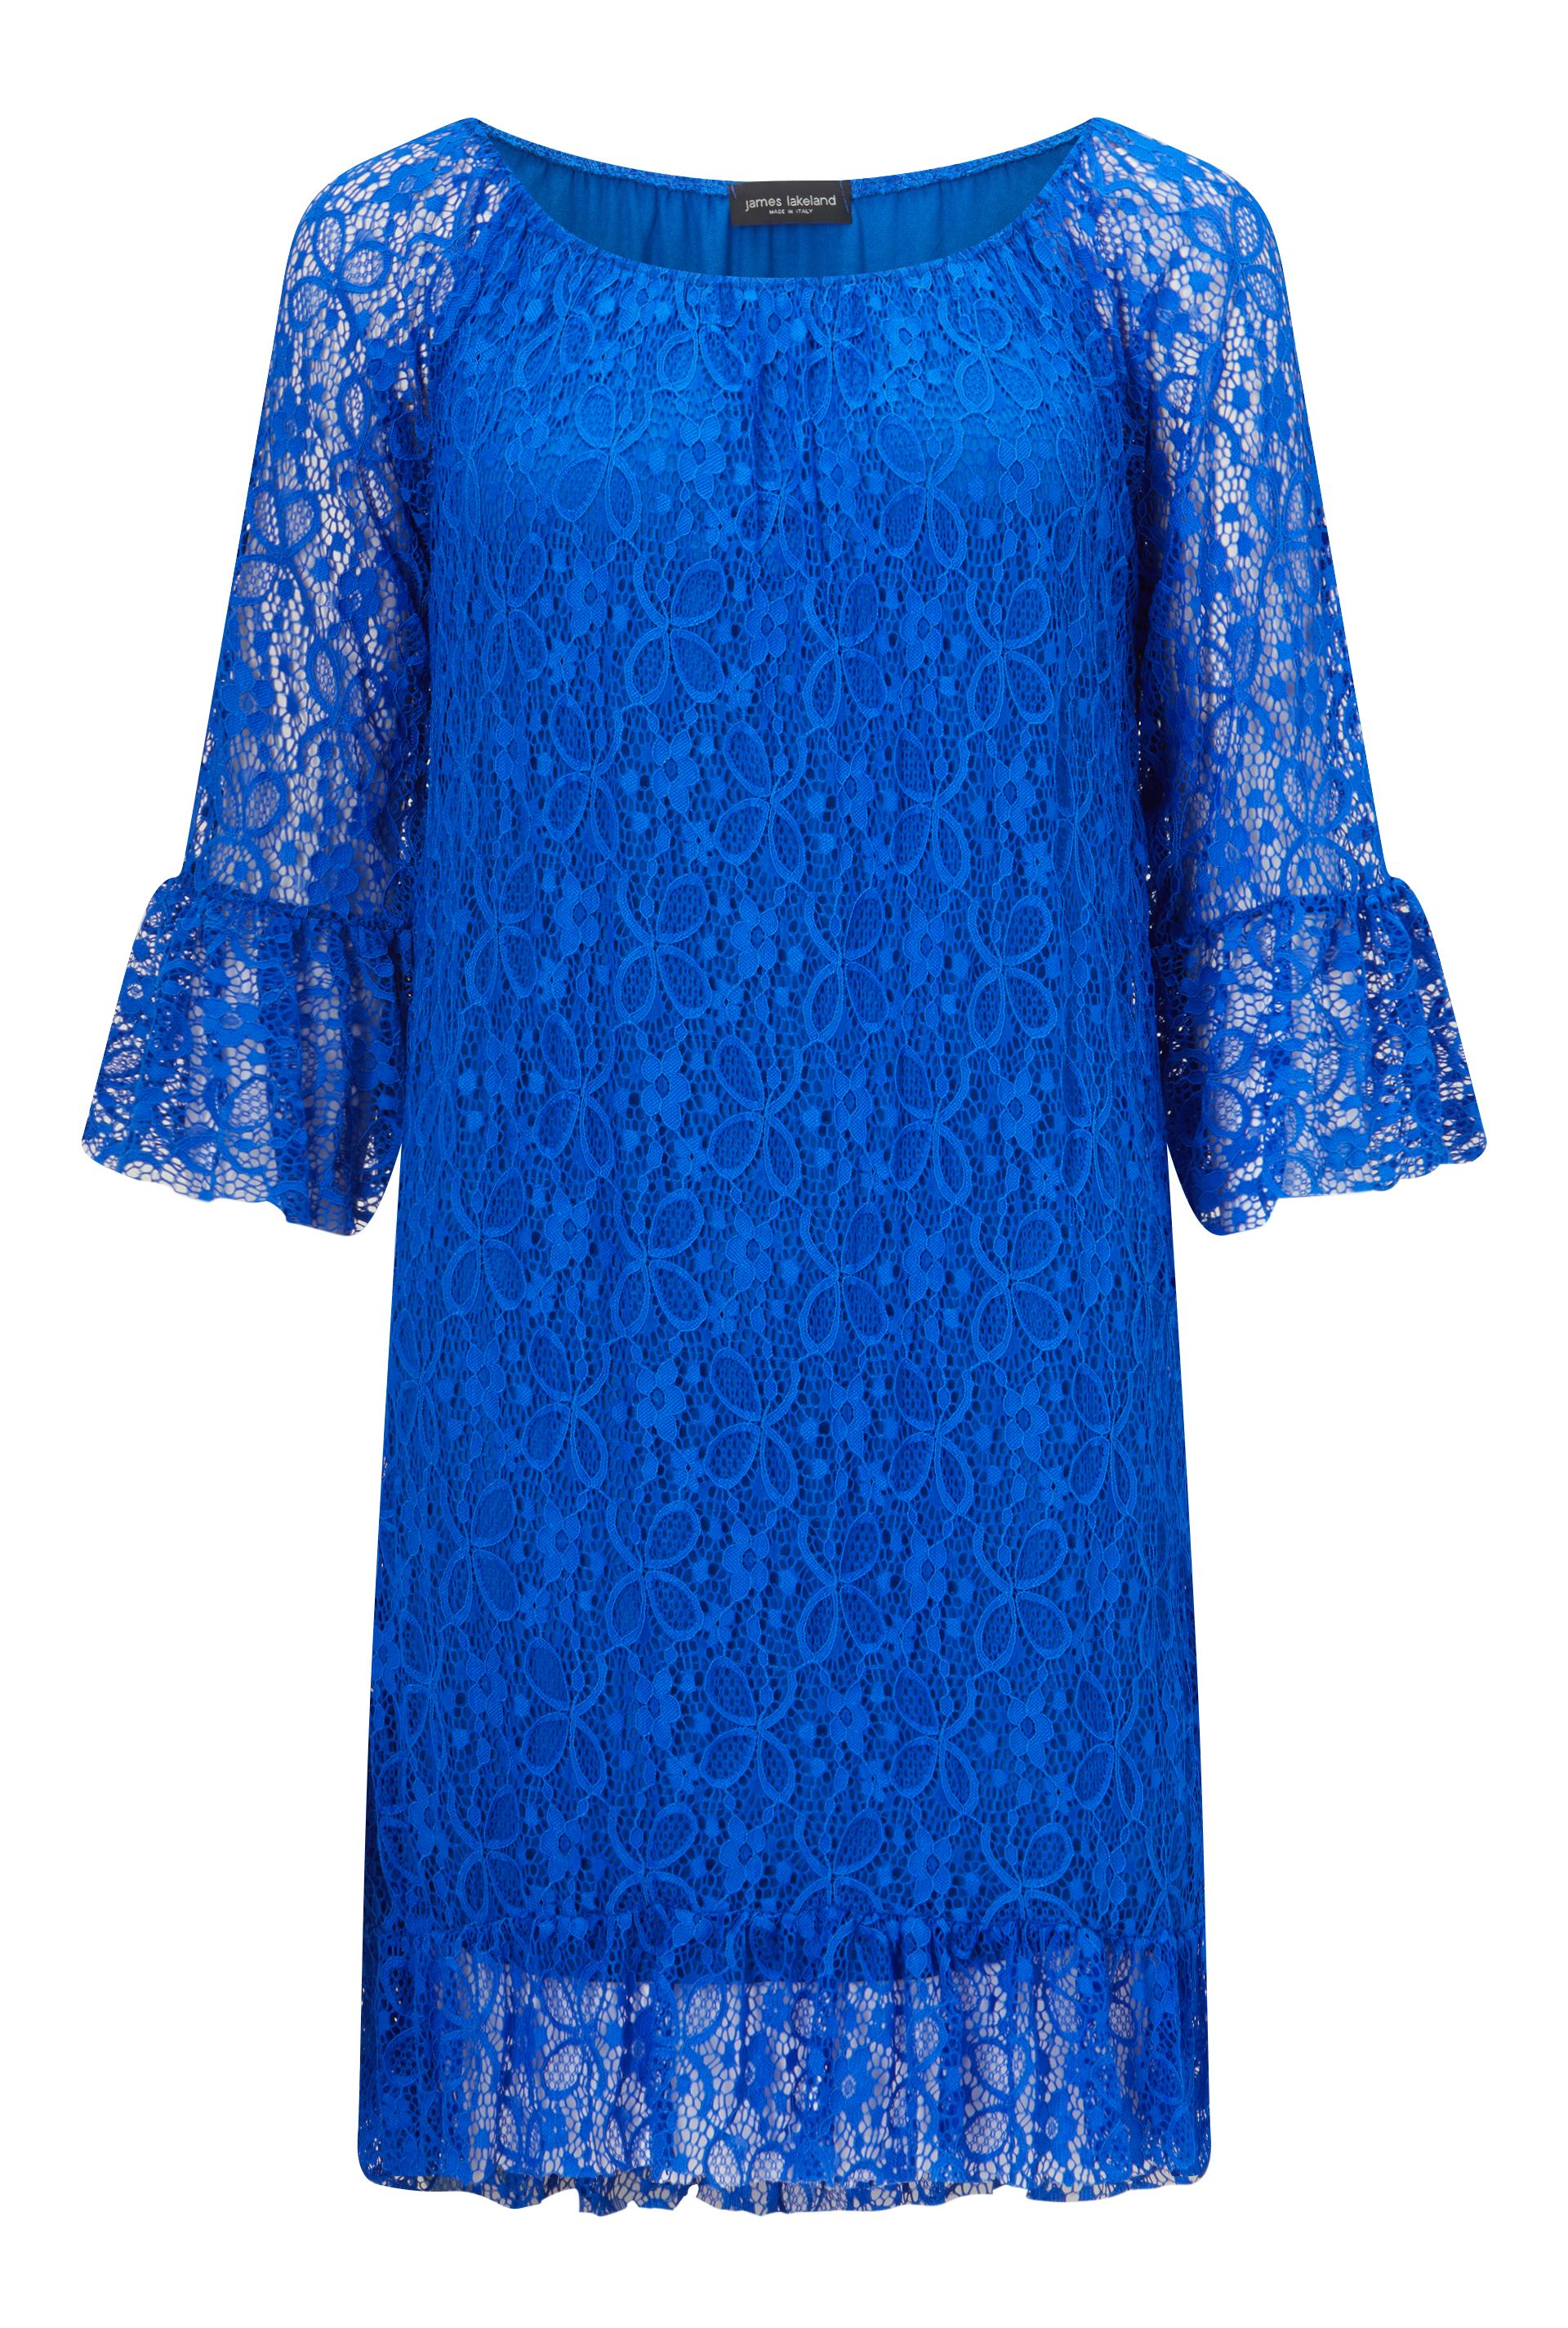 James Lakeland Lace Dress, Blue